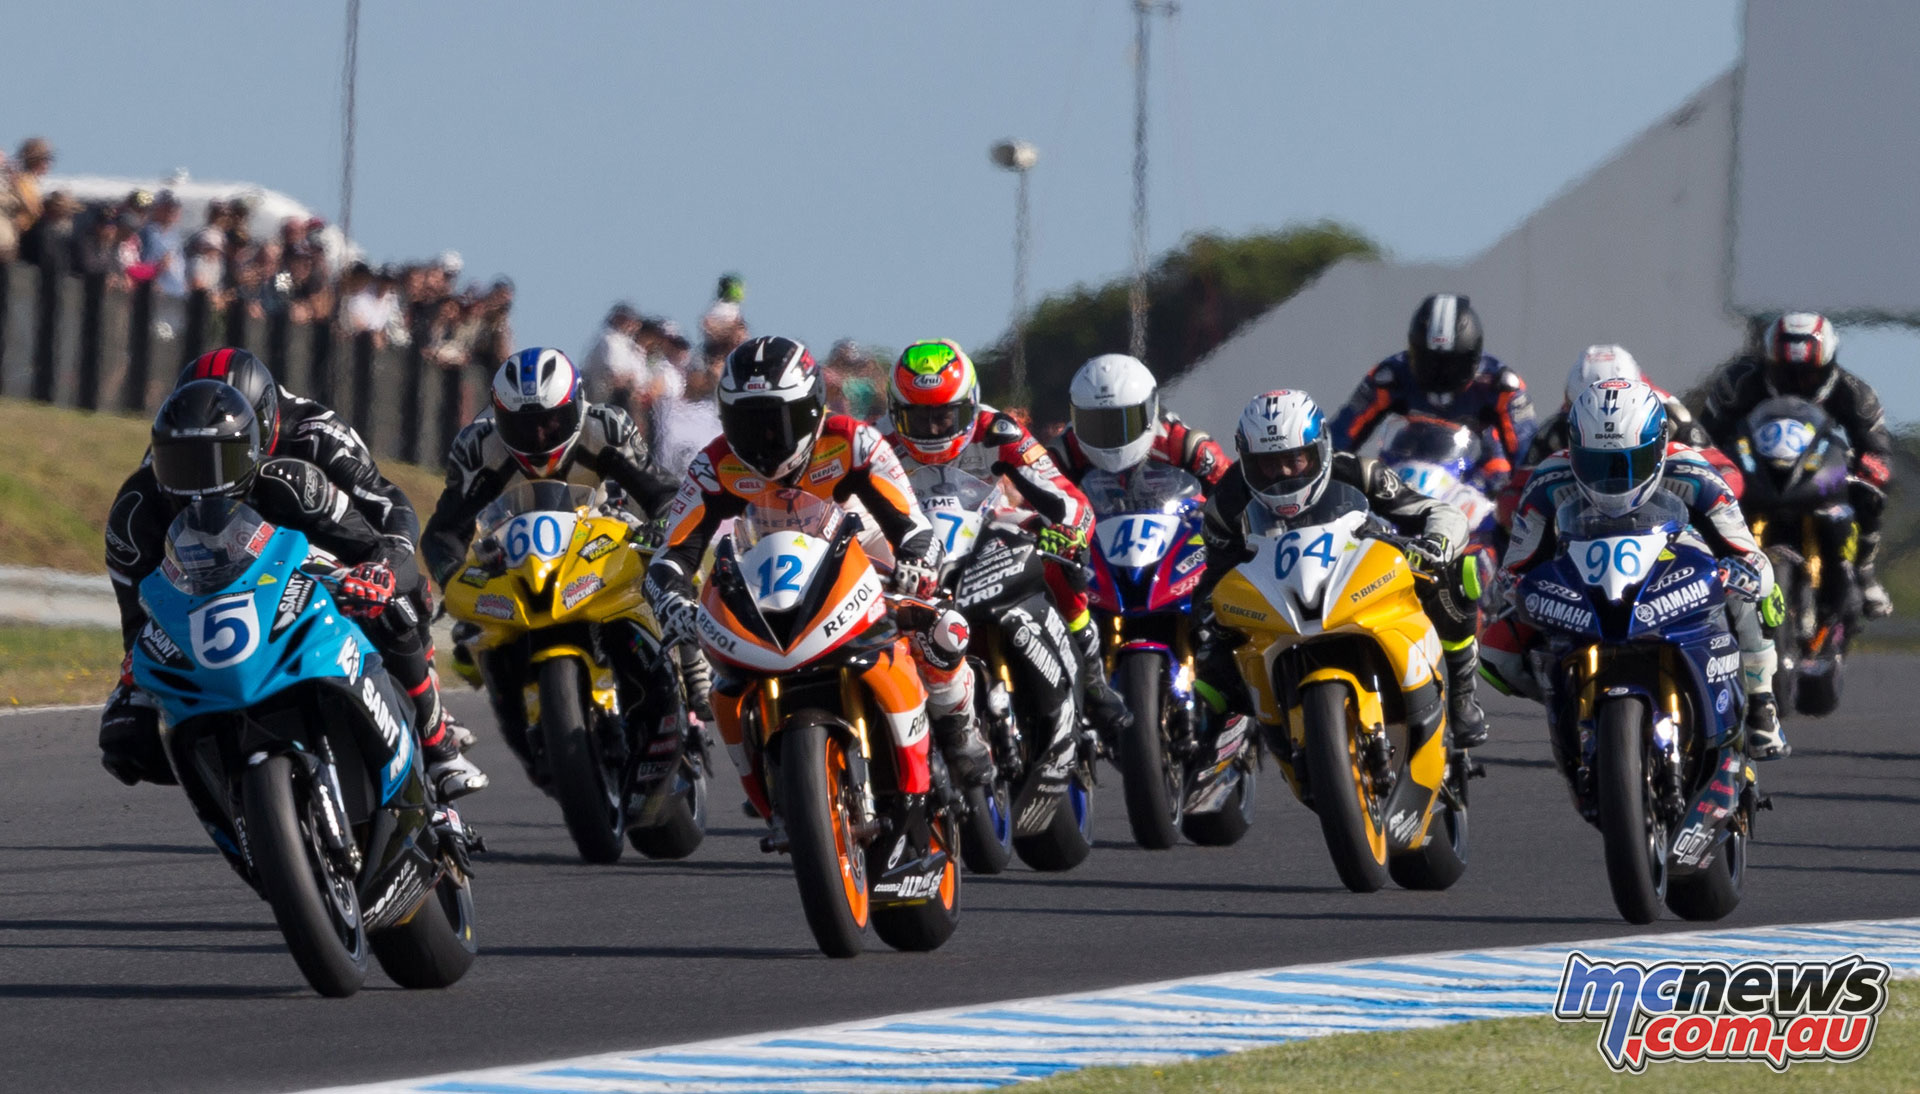 Supersport at the Phillip Island Championship Round 1 - Image by TBG Photography